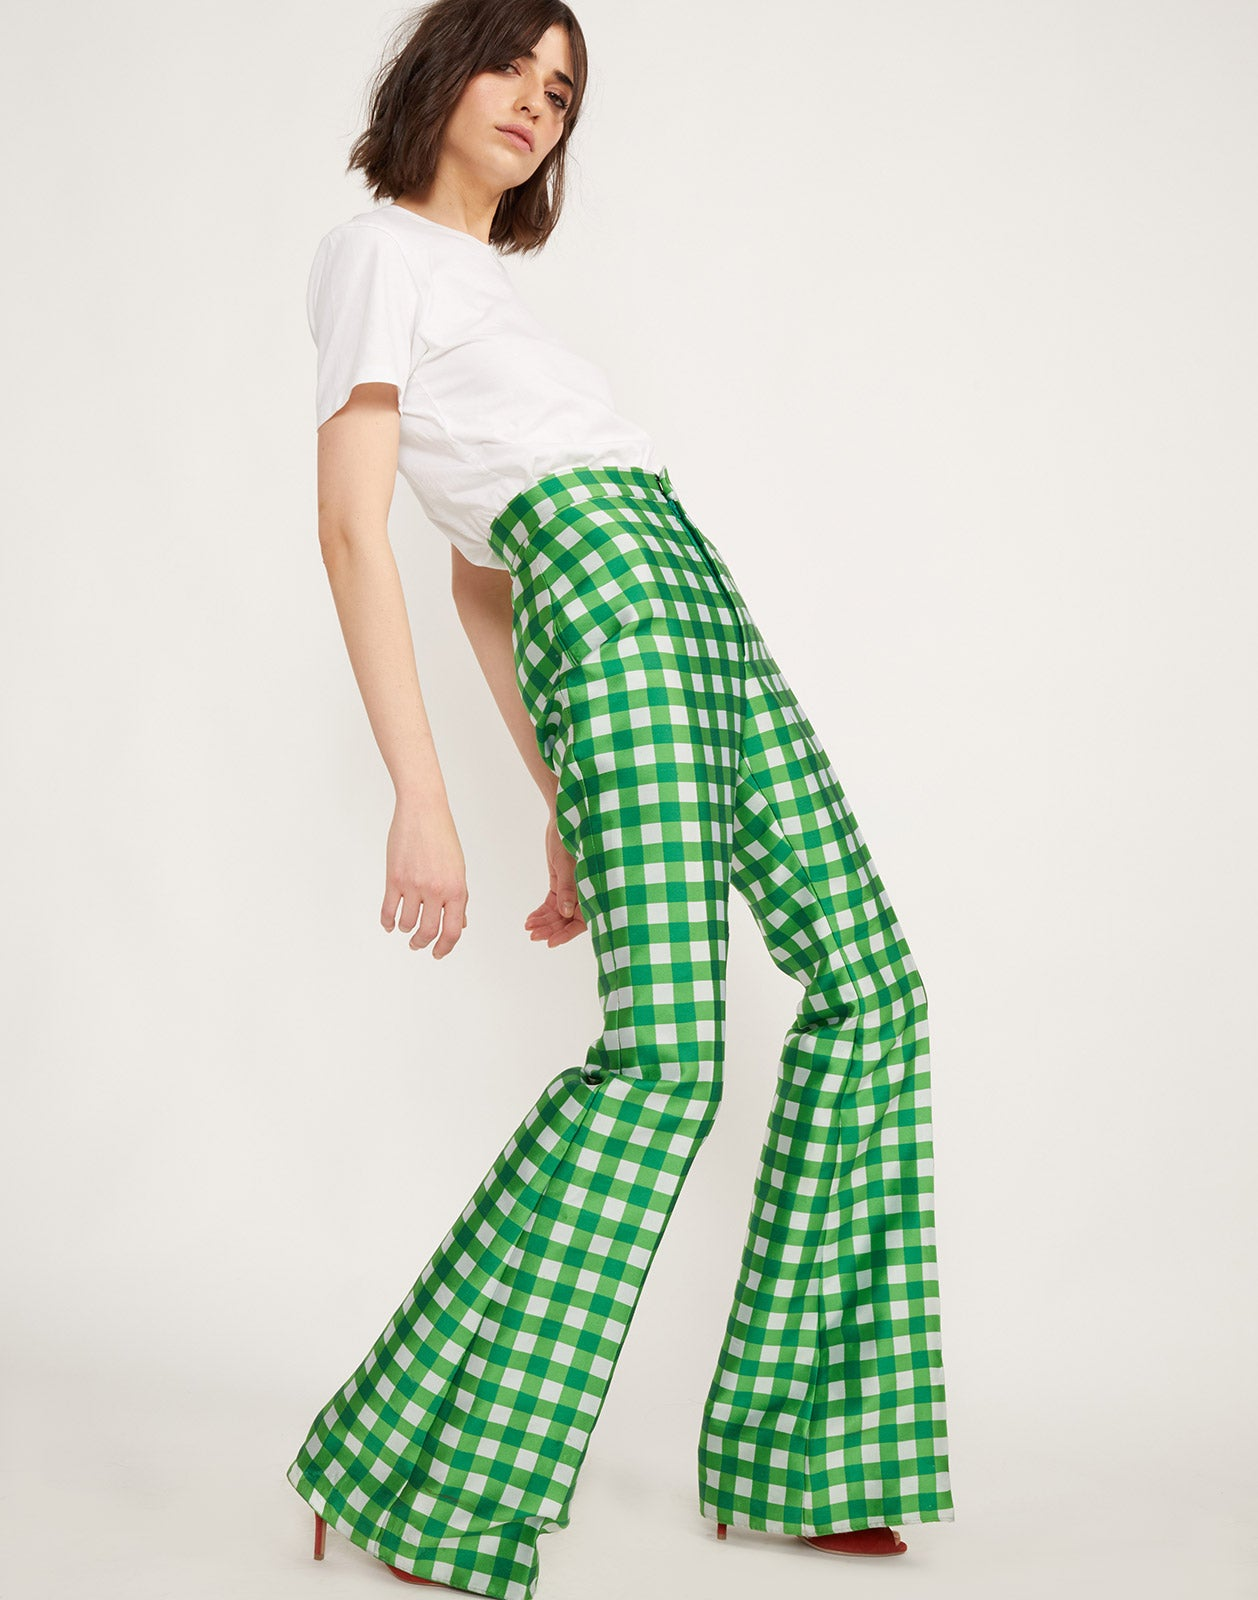 Side view of the Davis Gingham Flares